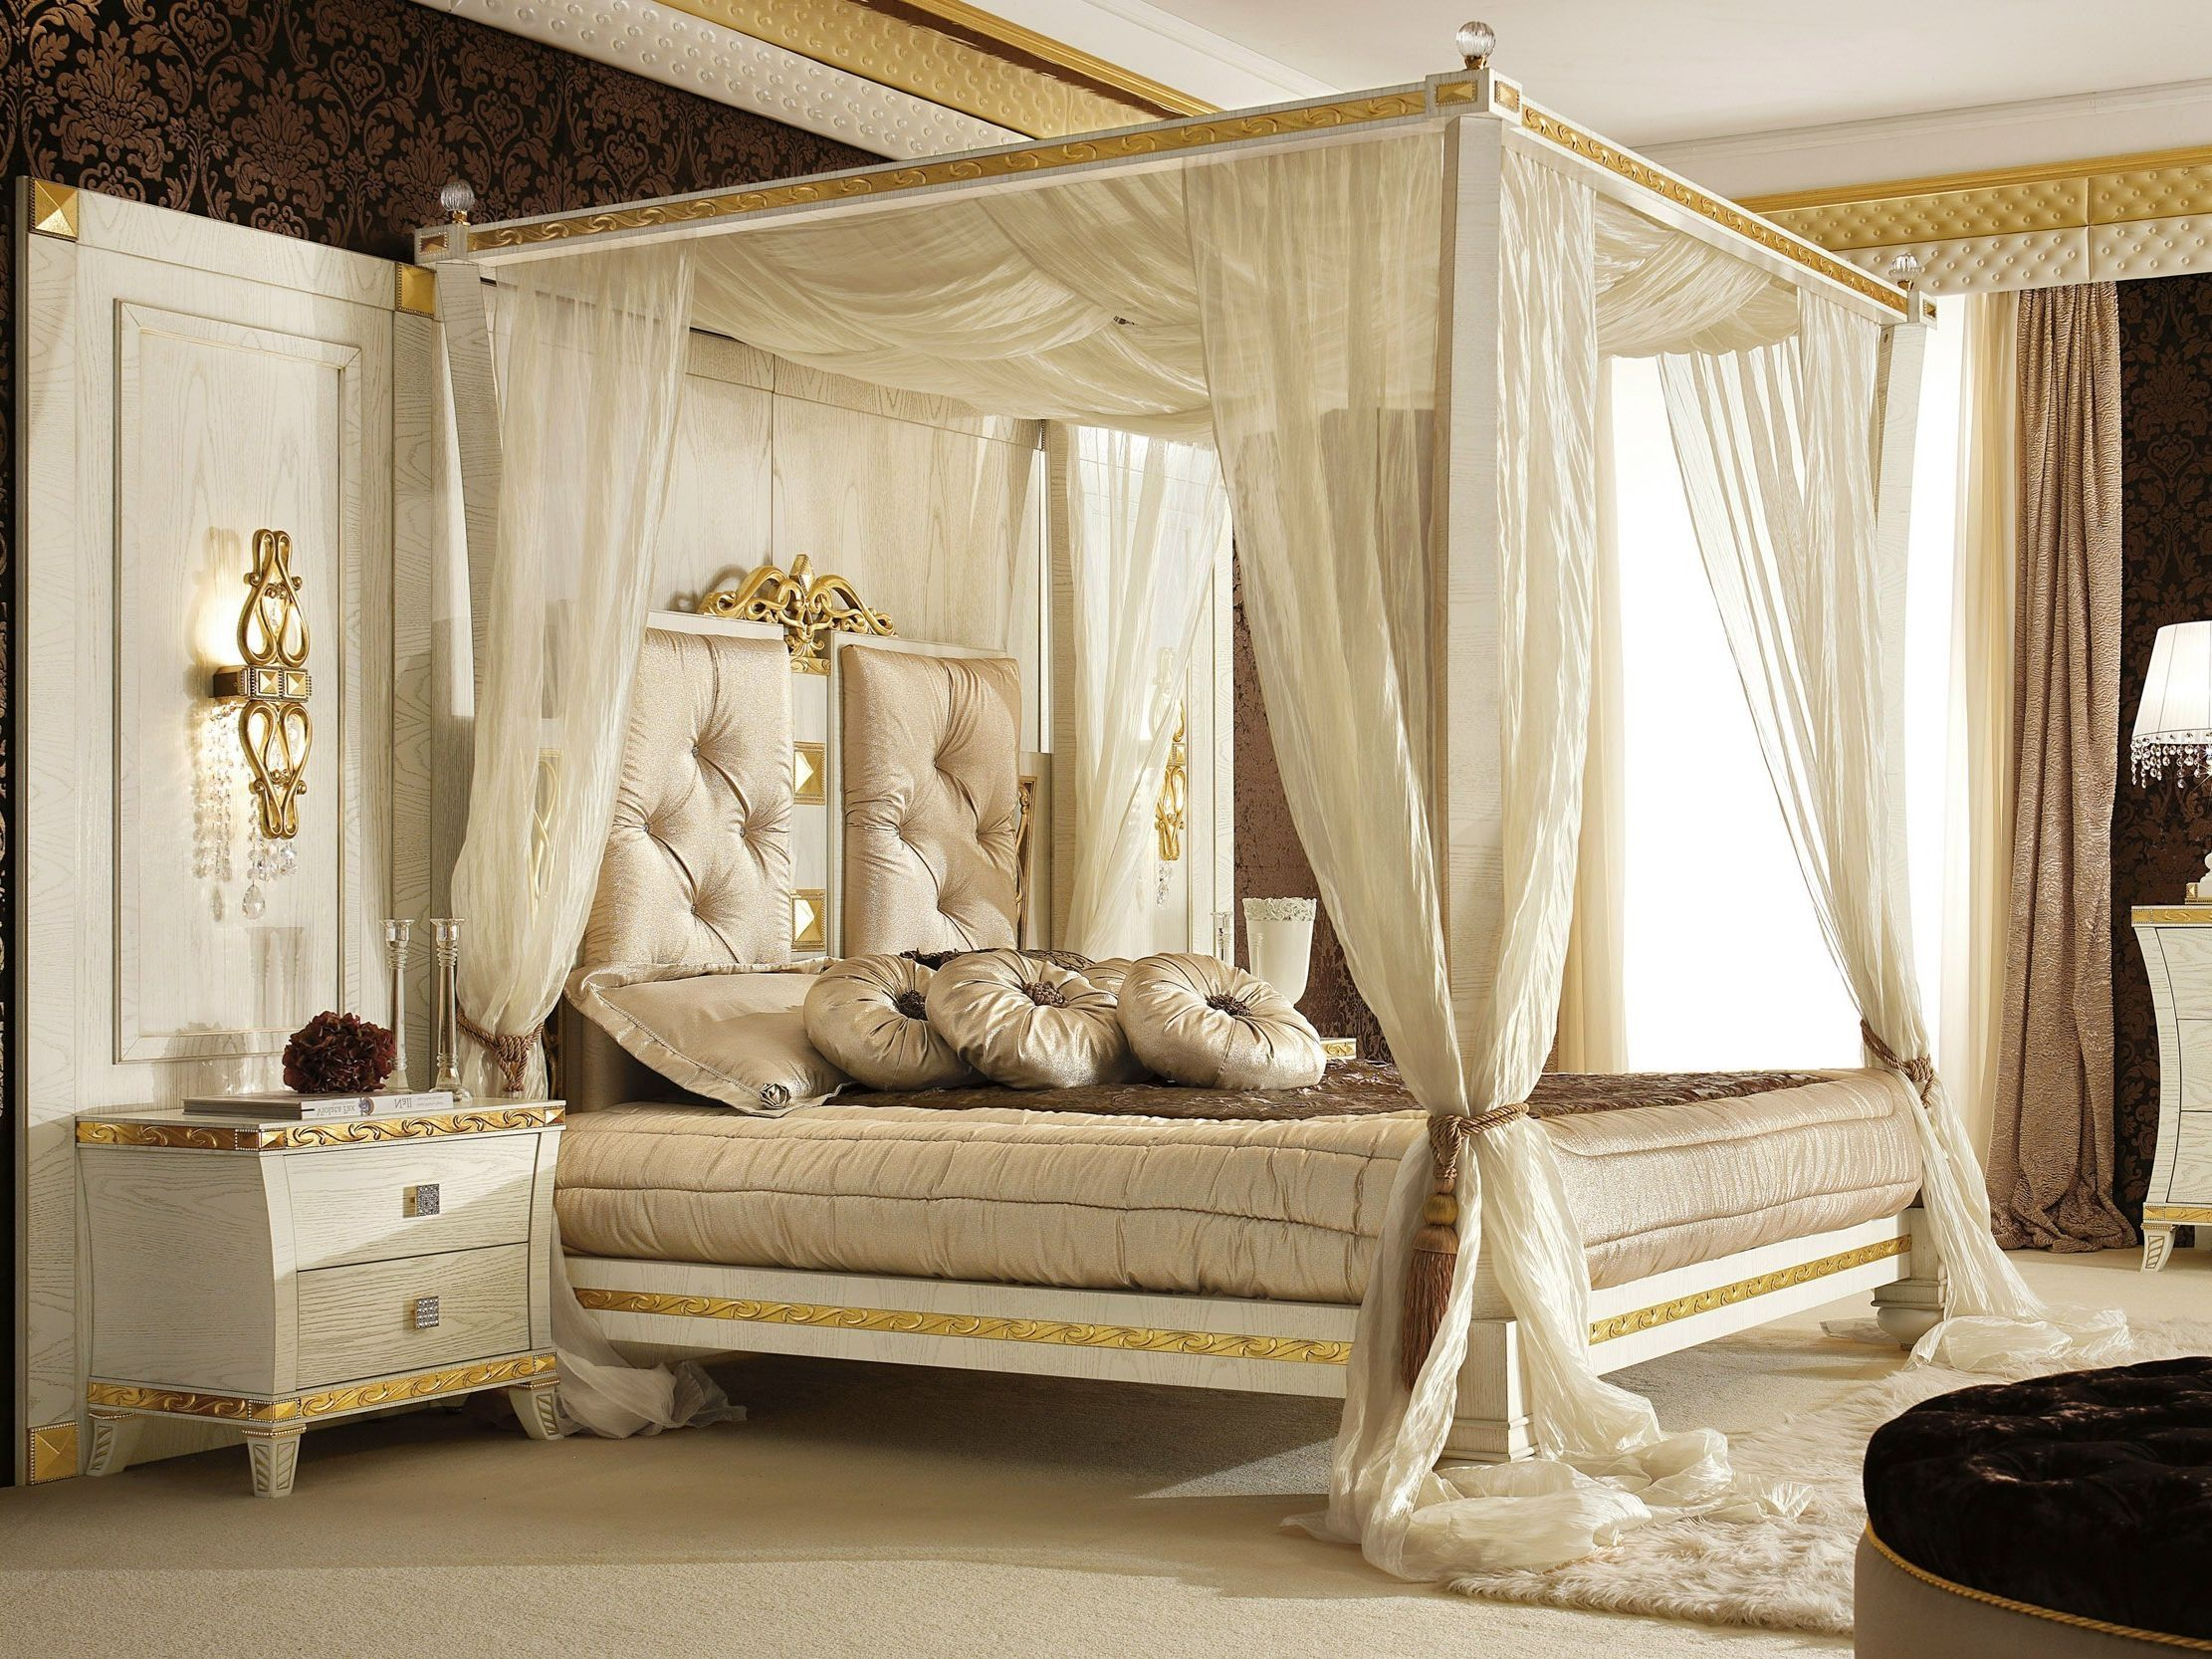 Canopy Curtains For Four Poster Bed Amp Picture Of Superb